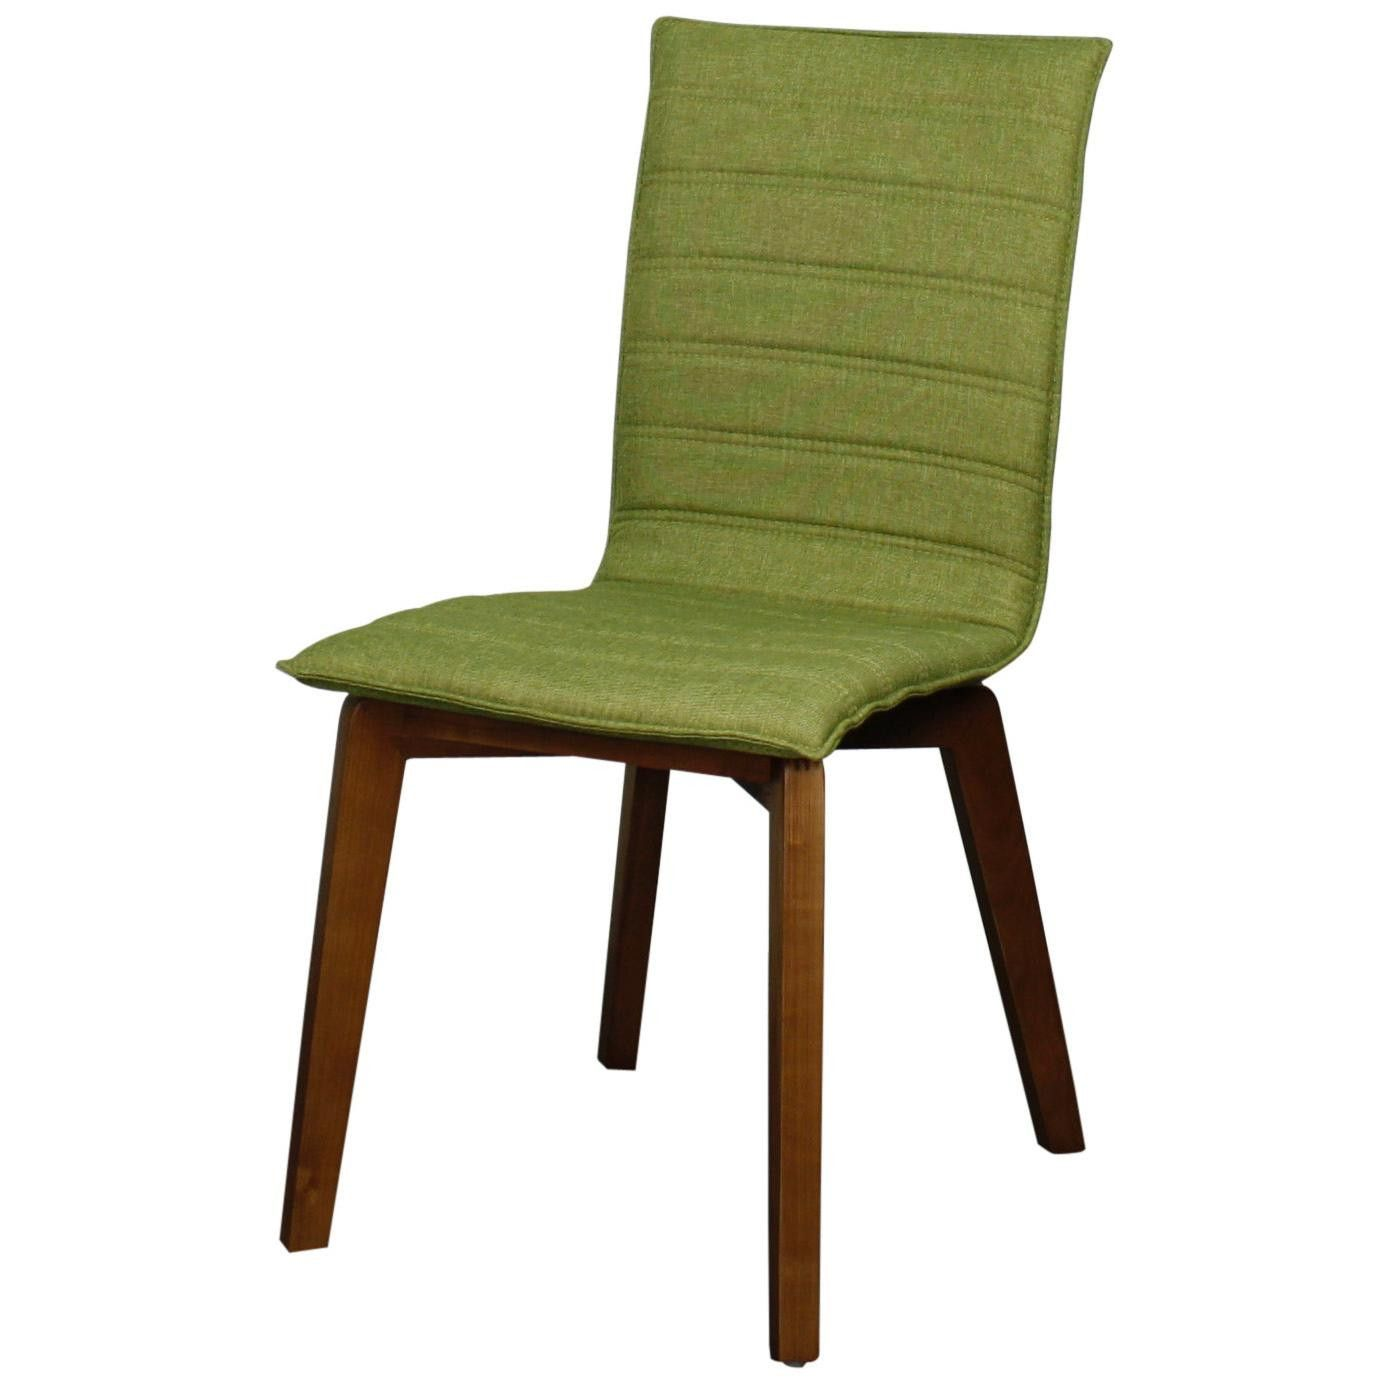 Furniture Legs Masters rory fabric chair walnut legs, limerick (set of 2) | fabrics, set